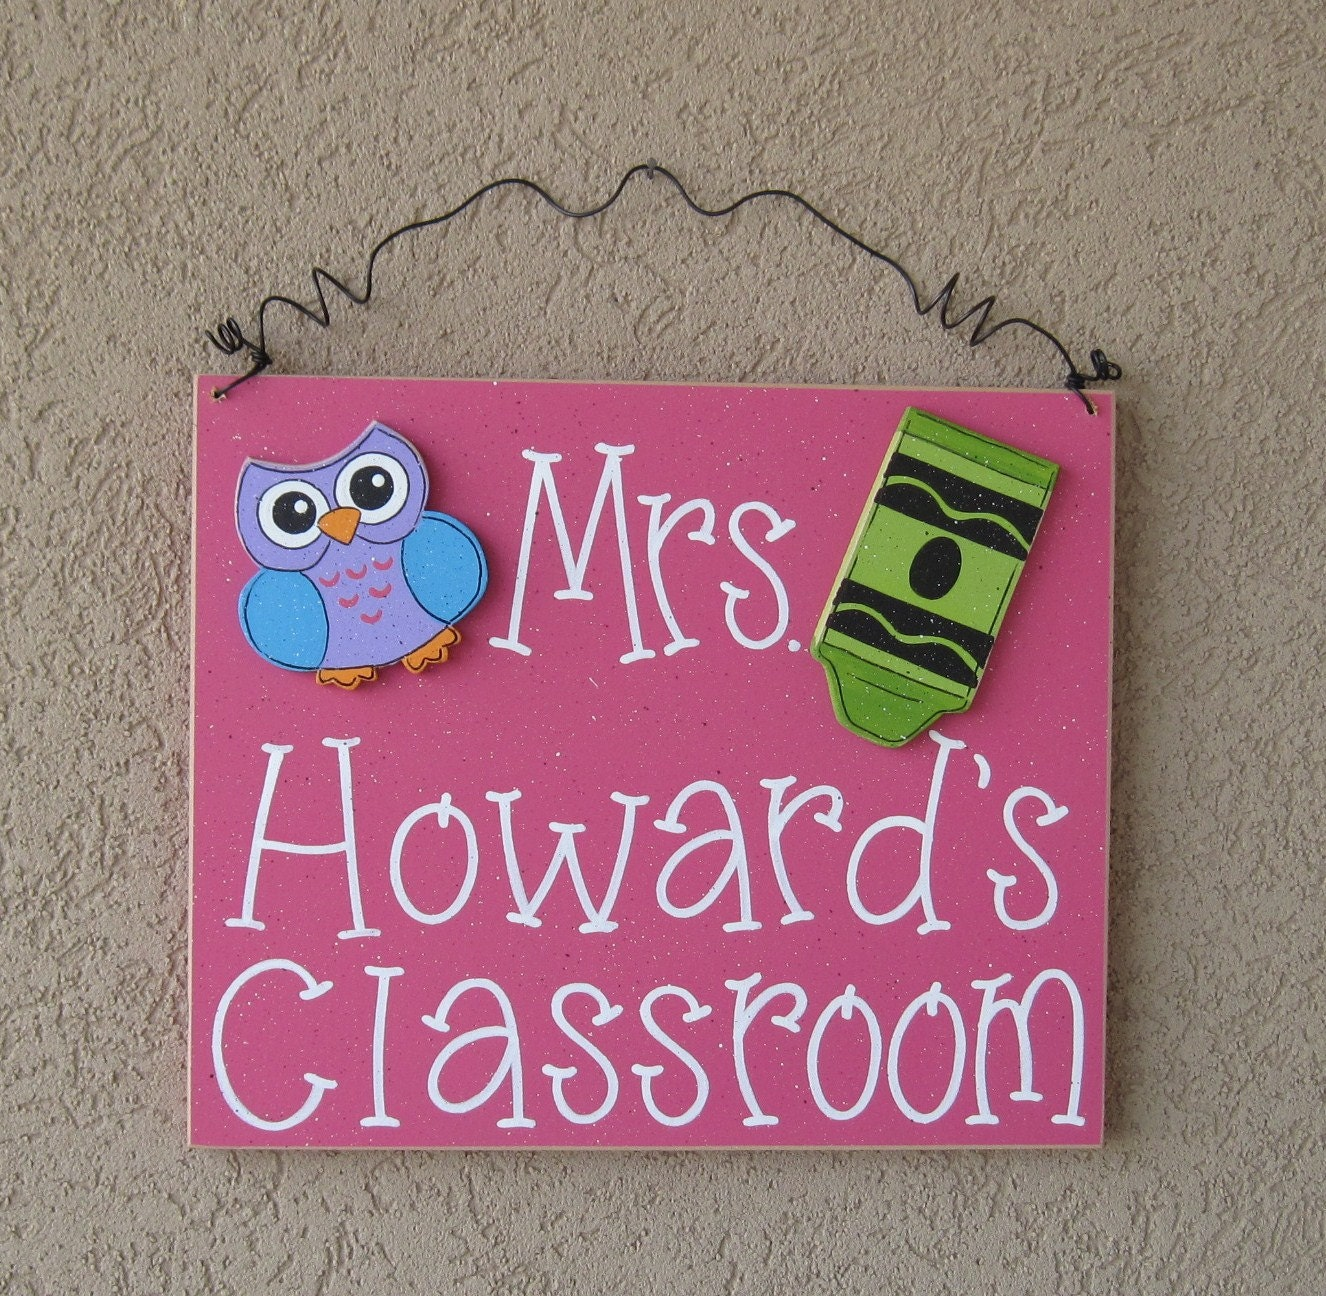 Custom Teacher Personalized Name Or Word Sign For Children. June 21 Signs Of Stroke. Children's Schedule Signs. Soot Signs. Fungal Signs. Females Only Signs Of Stroke. Shutdown Signs. Hemorrhagic Signs Of Stroke. Stainless Steel Signs Of Stroke